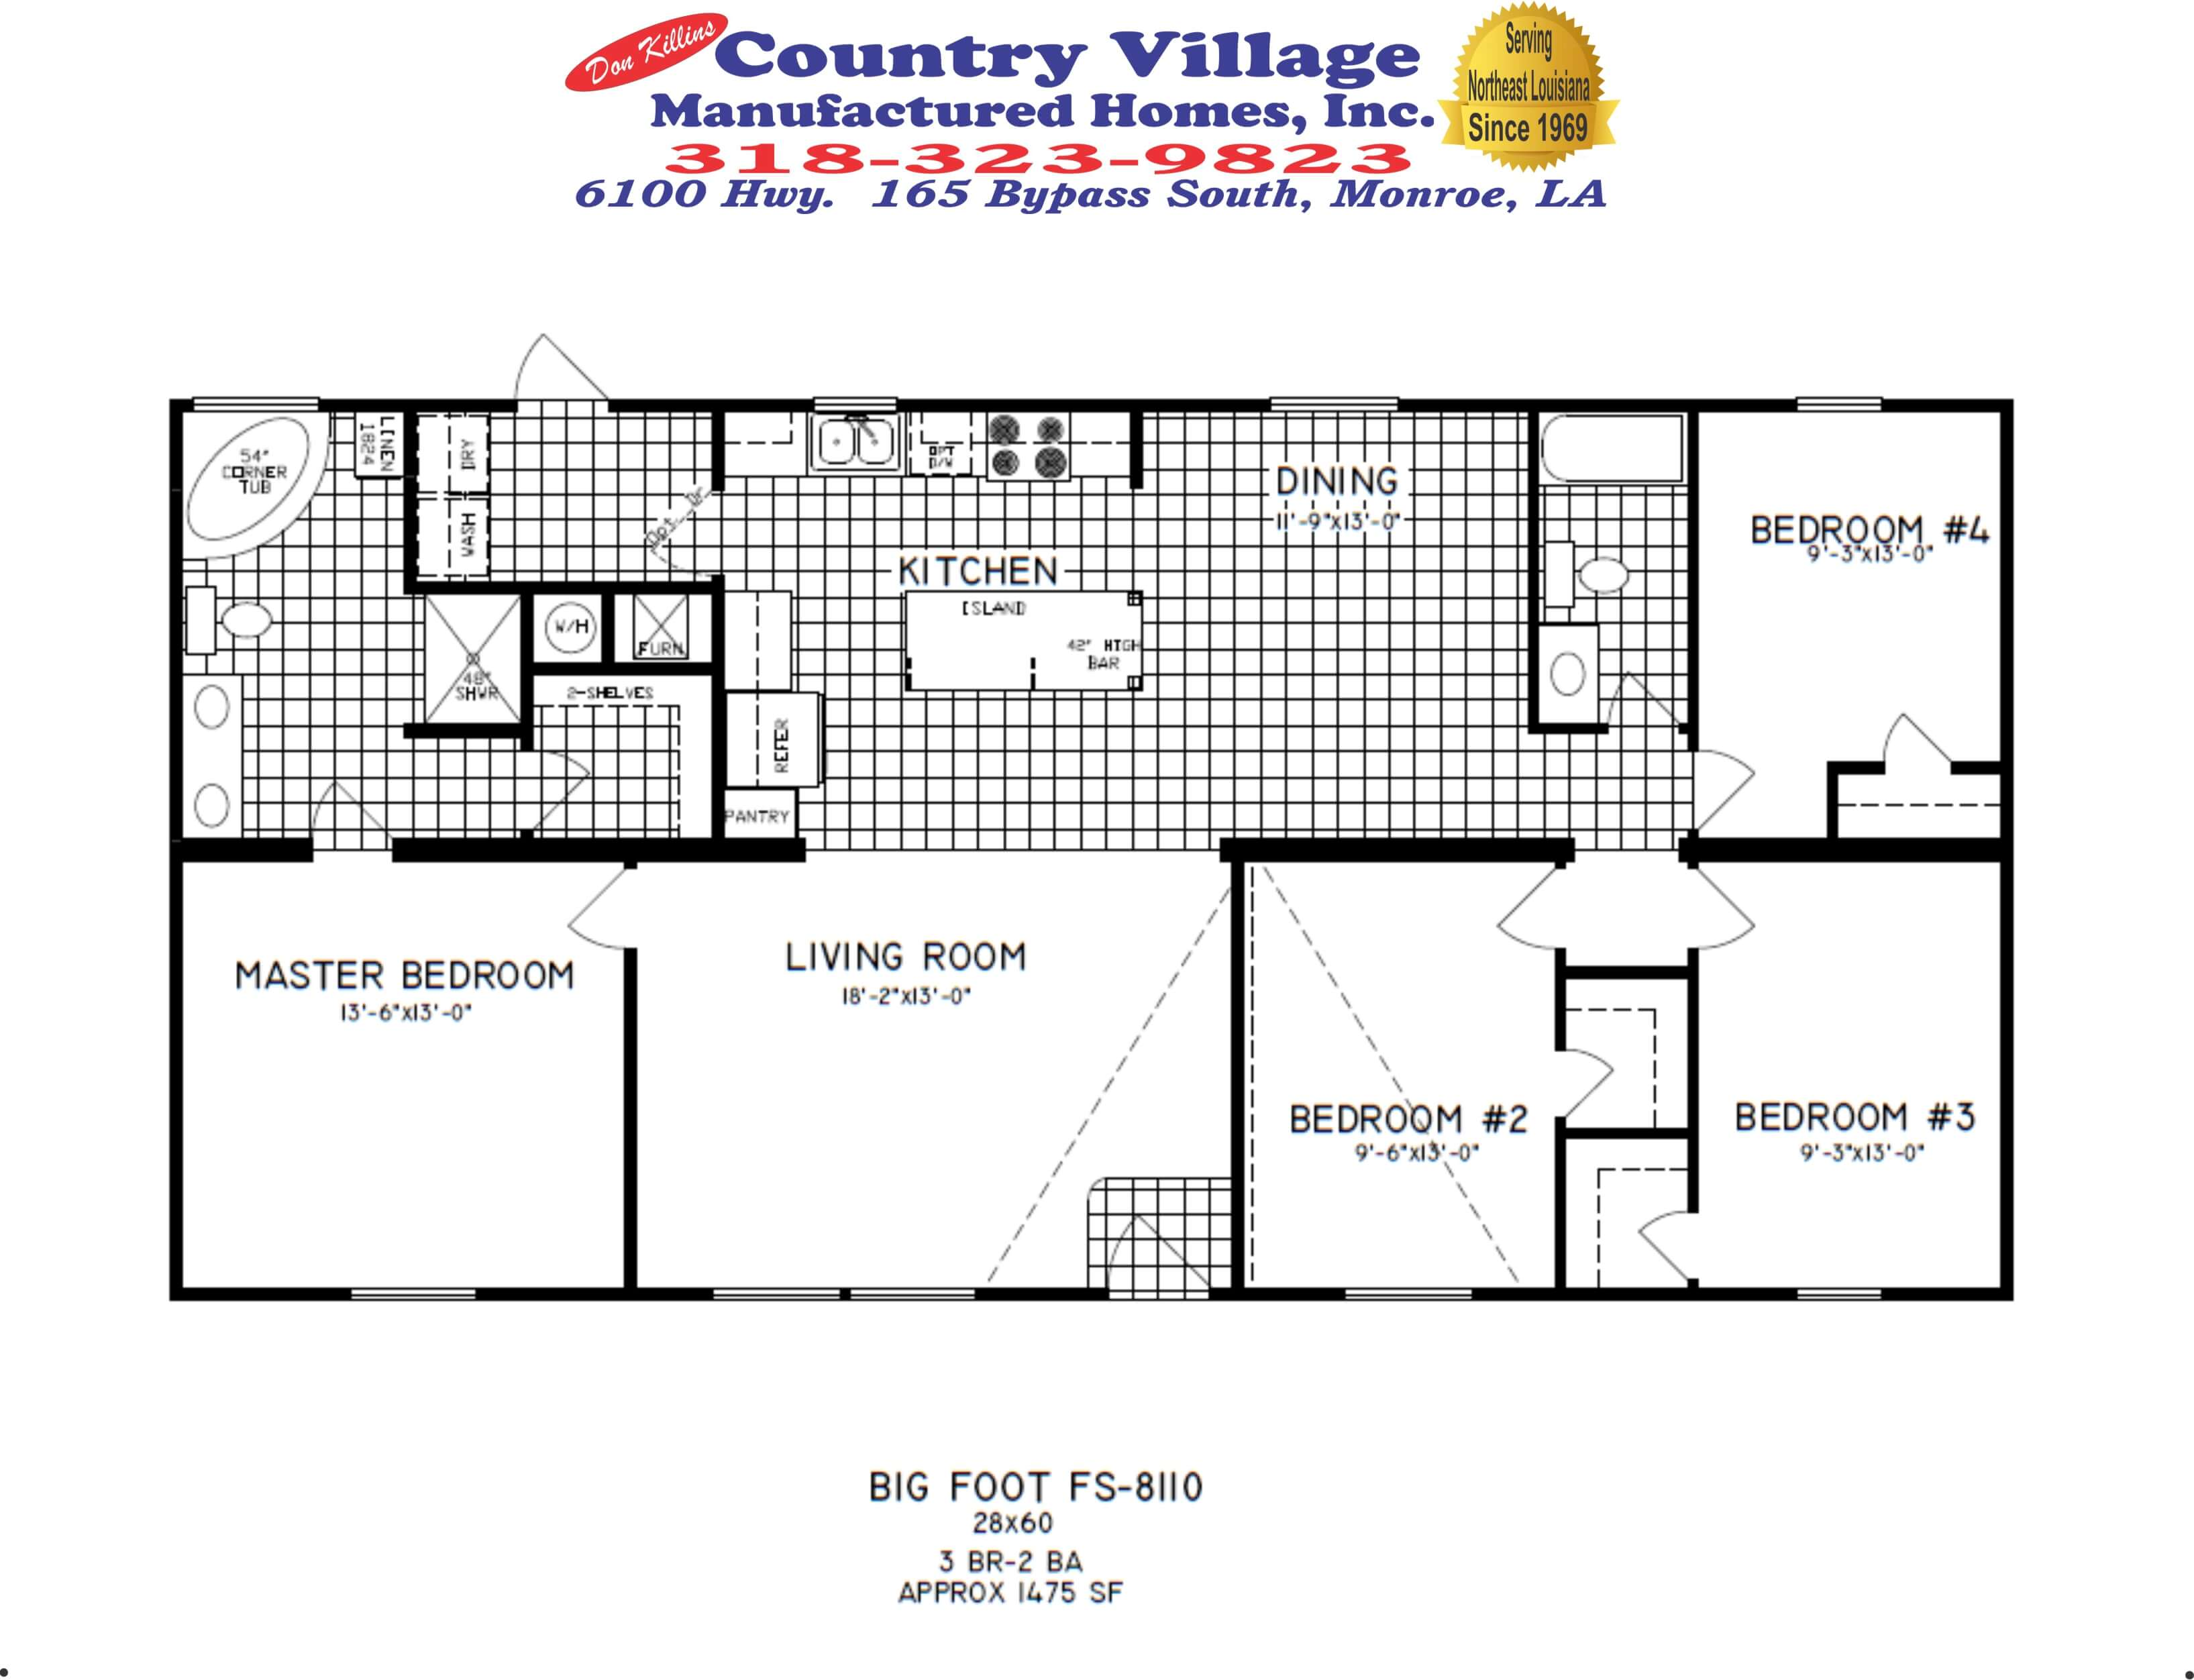 Double Wide Floorplans Don Killins Country Village Manufactured Homes Inc